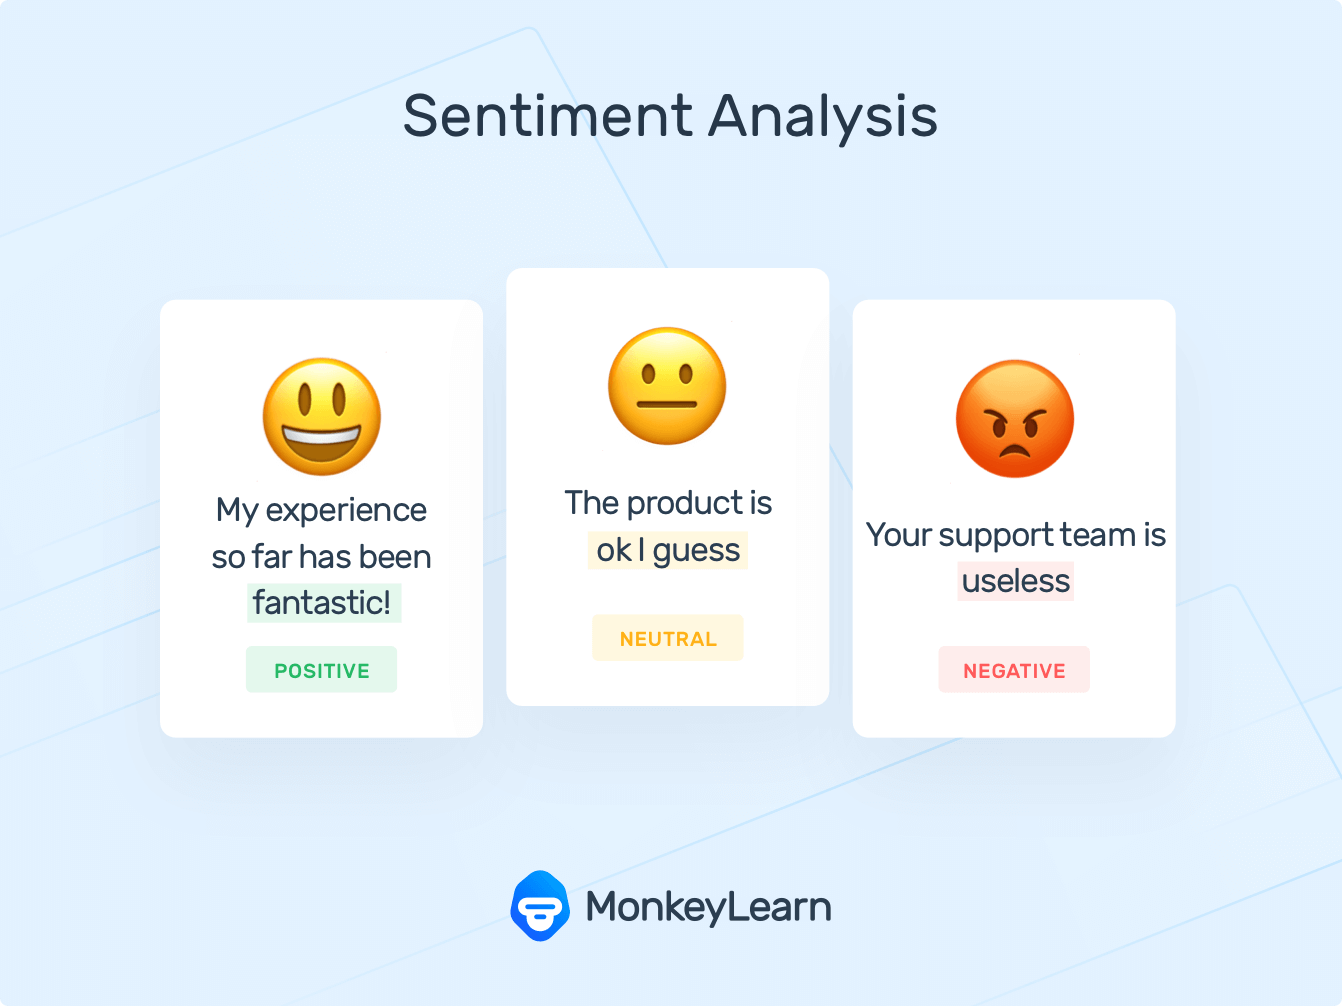 Emojis as representations of sentiments: positive, neutral, and negative to show how sentiment analysis works. Text reads 'my experience so far has been fantastic!' (positive), 'The product is ok, I guess' (neutral), and 'your support team is useless' (negative).